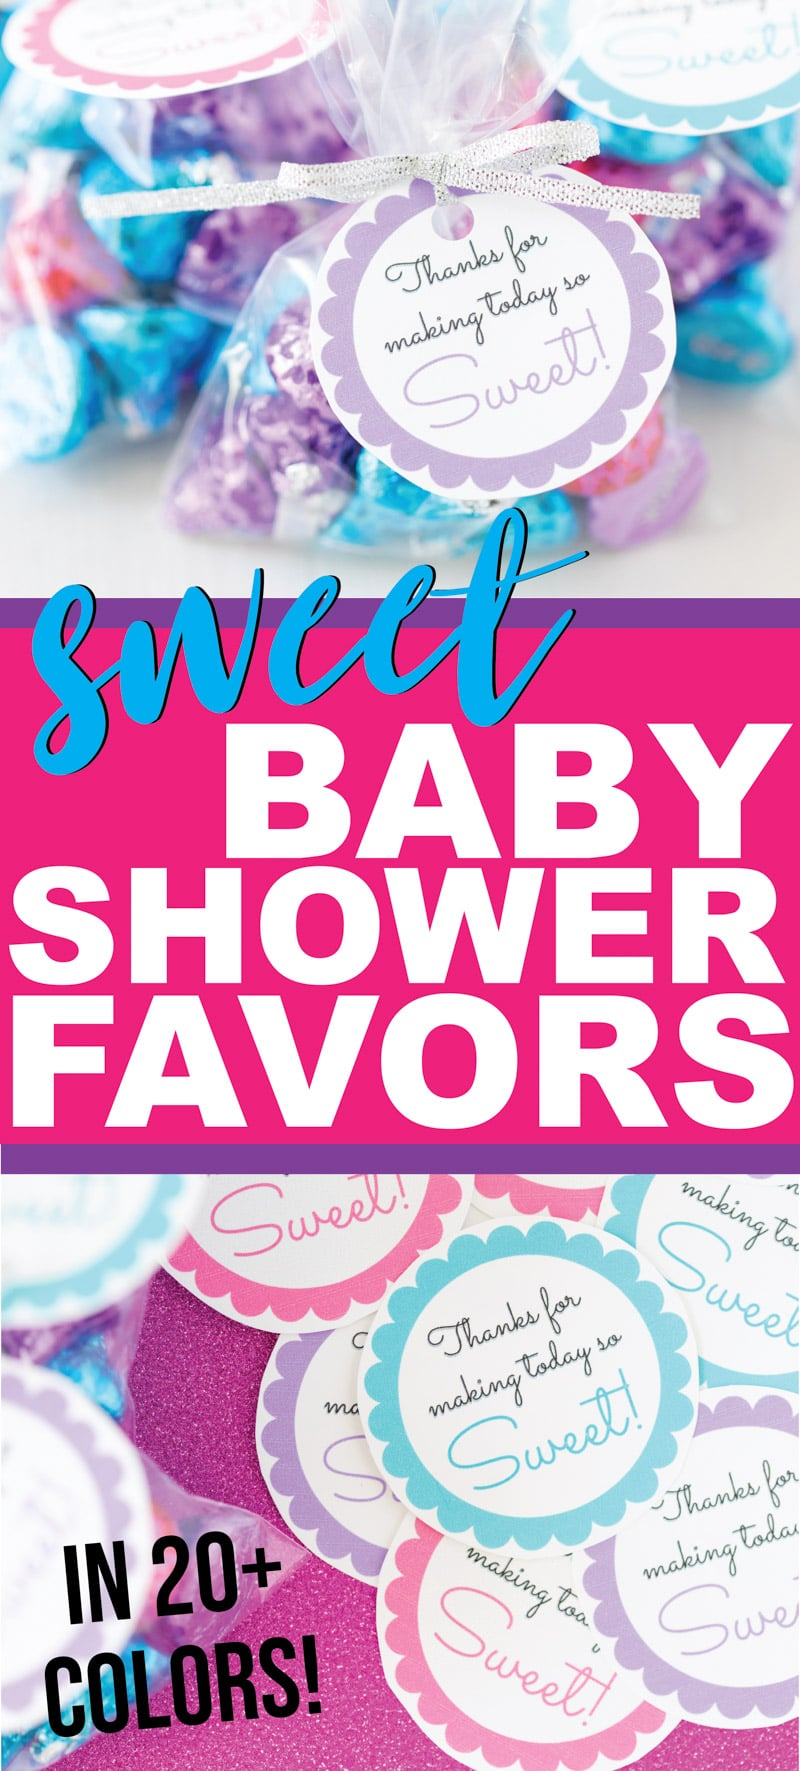 These are the sweetest baby shower favors for boys, for girls, and for guests of any age! They're cheap and can be filled with DIY homemade treats making them perfect for anyone looking for something inexpensive but still unique! Perfect for a baby shower on a budget!